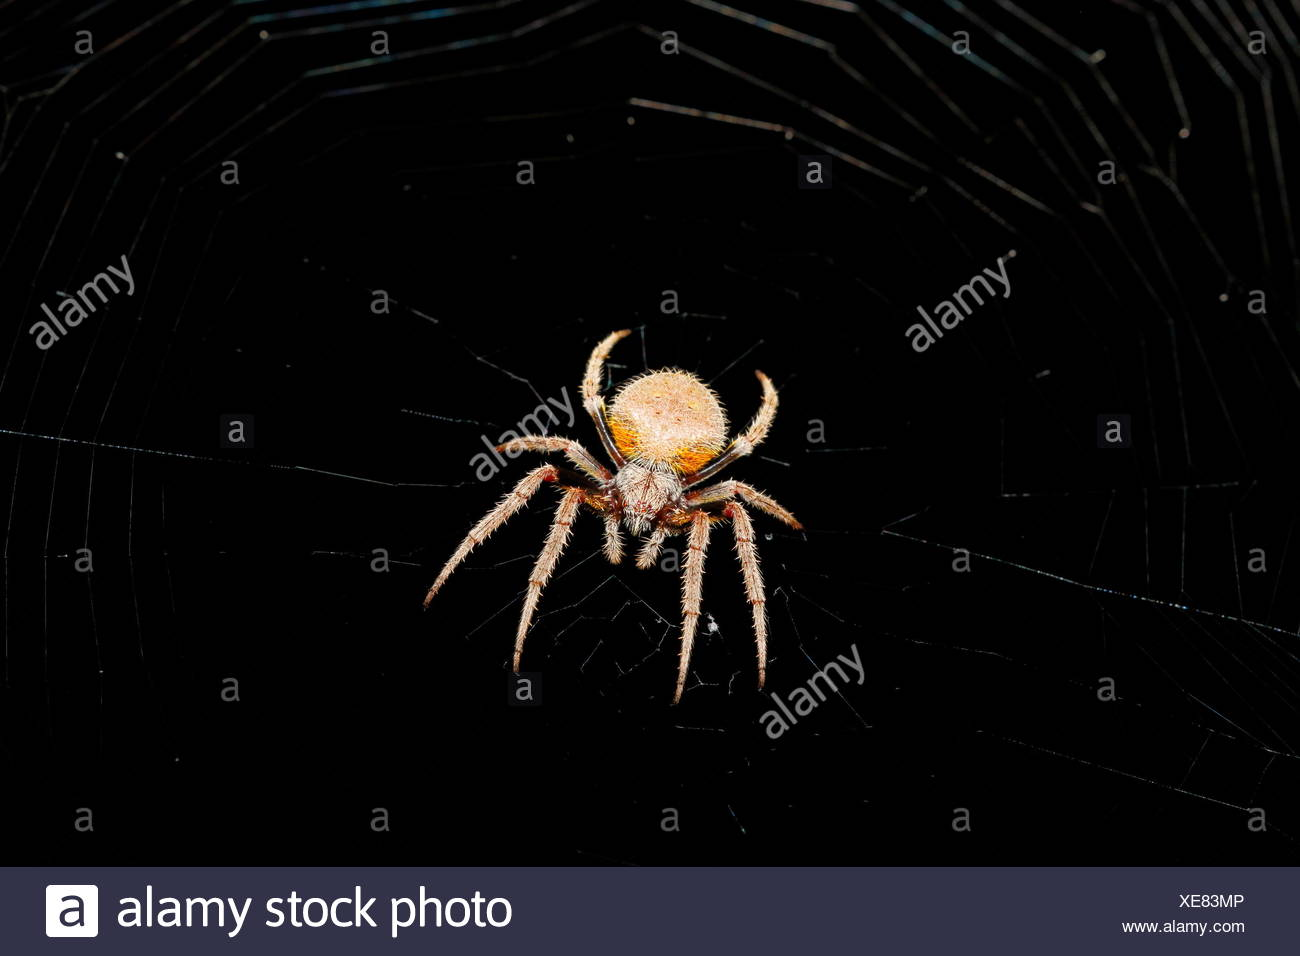 A tropical orb weaver spider, Araneidae, in the center of its web. - Stock Image